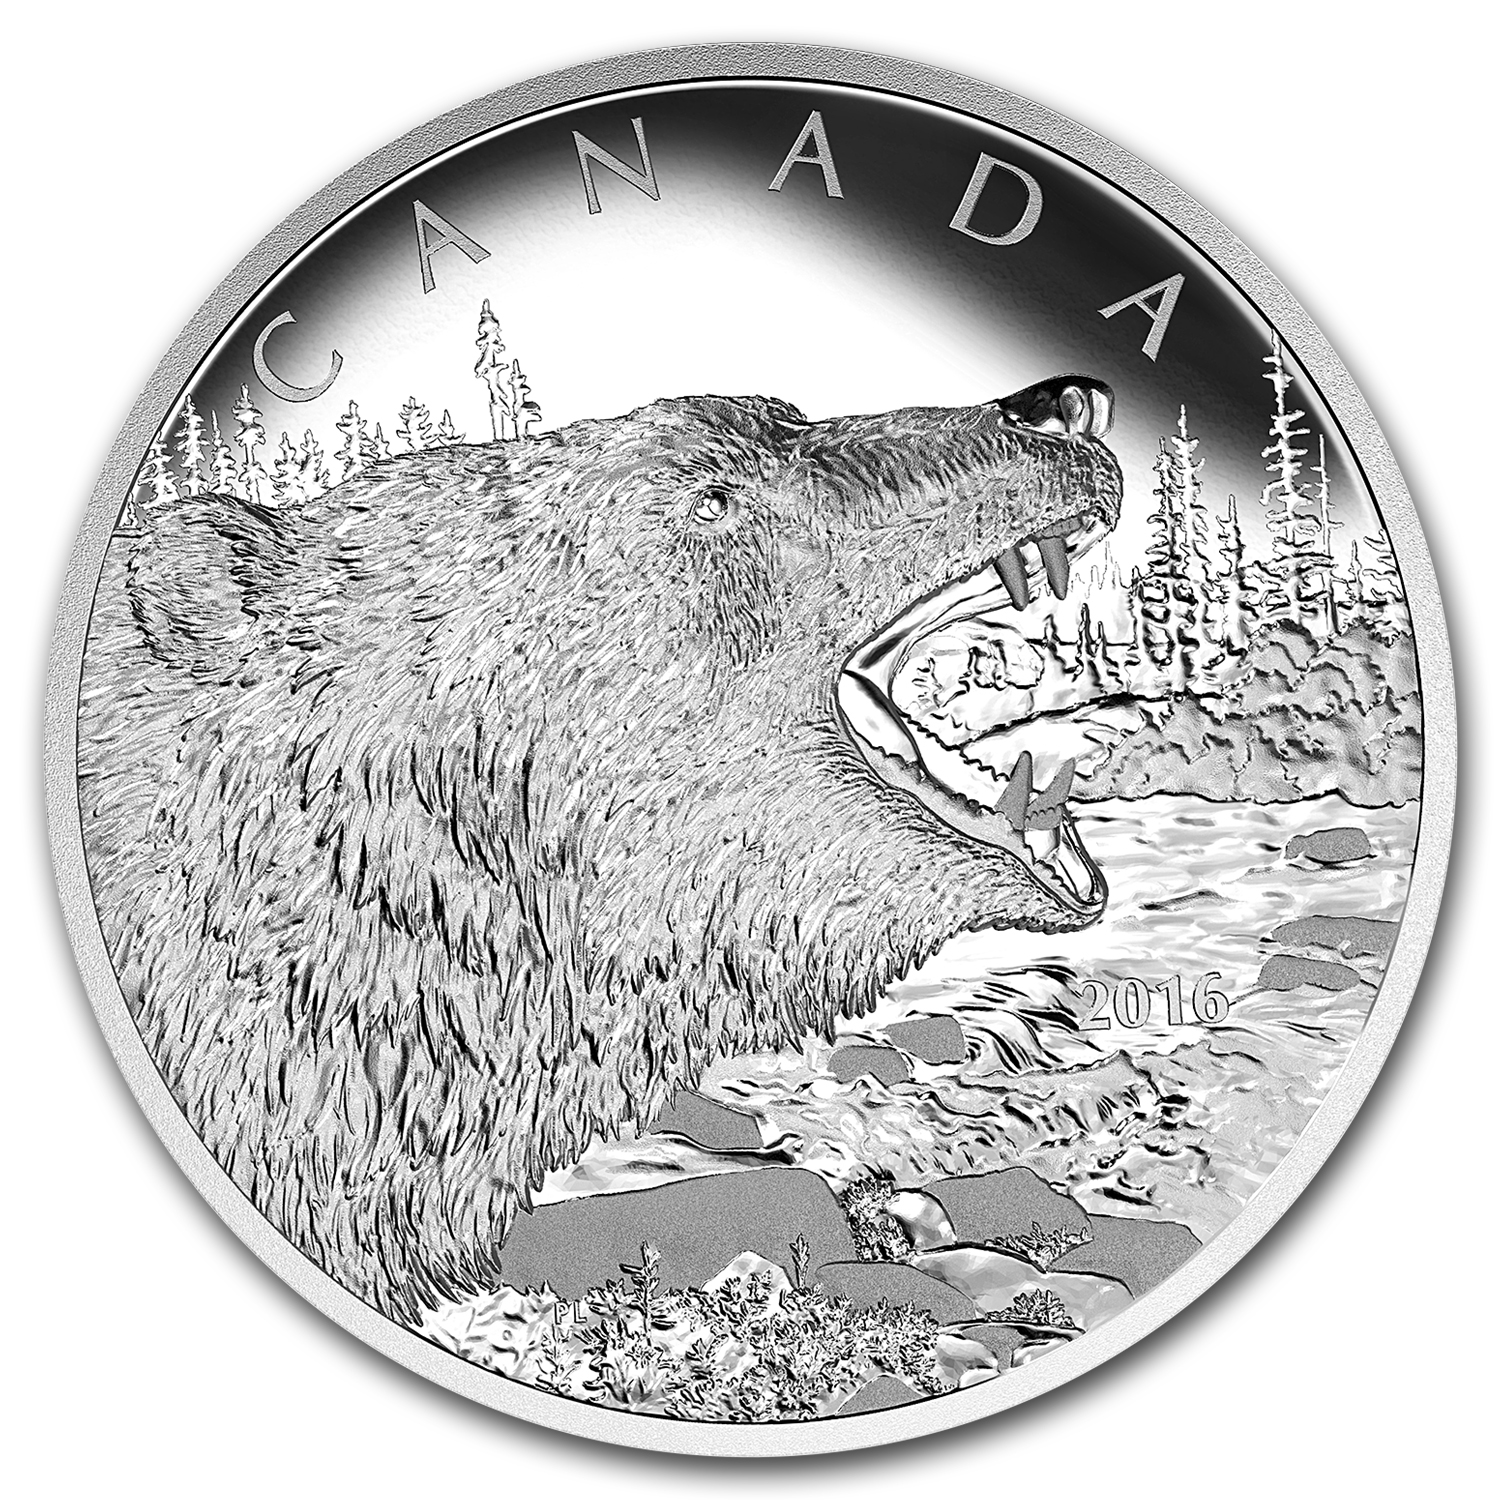 2016 Canada 1/2 kilo Proof Silver $125 Roaring Grizzly Bear